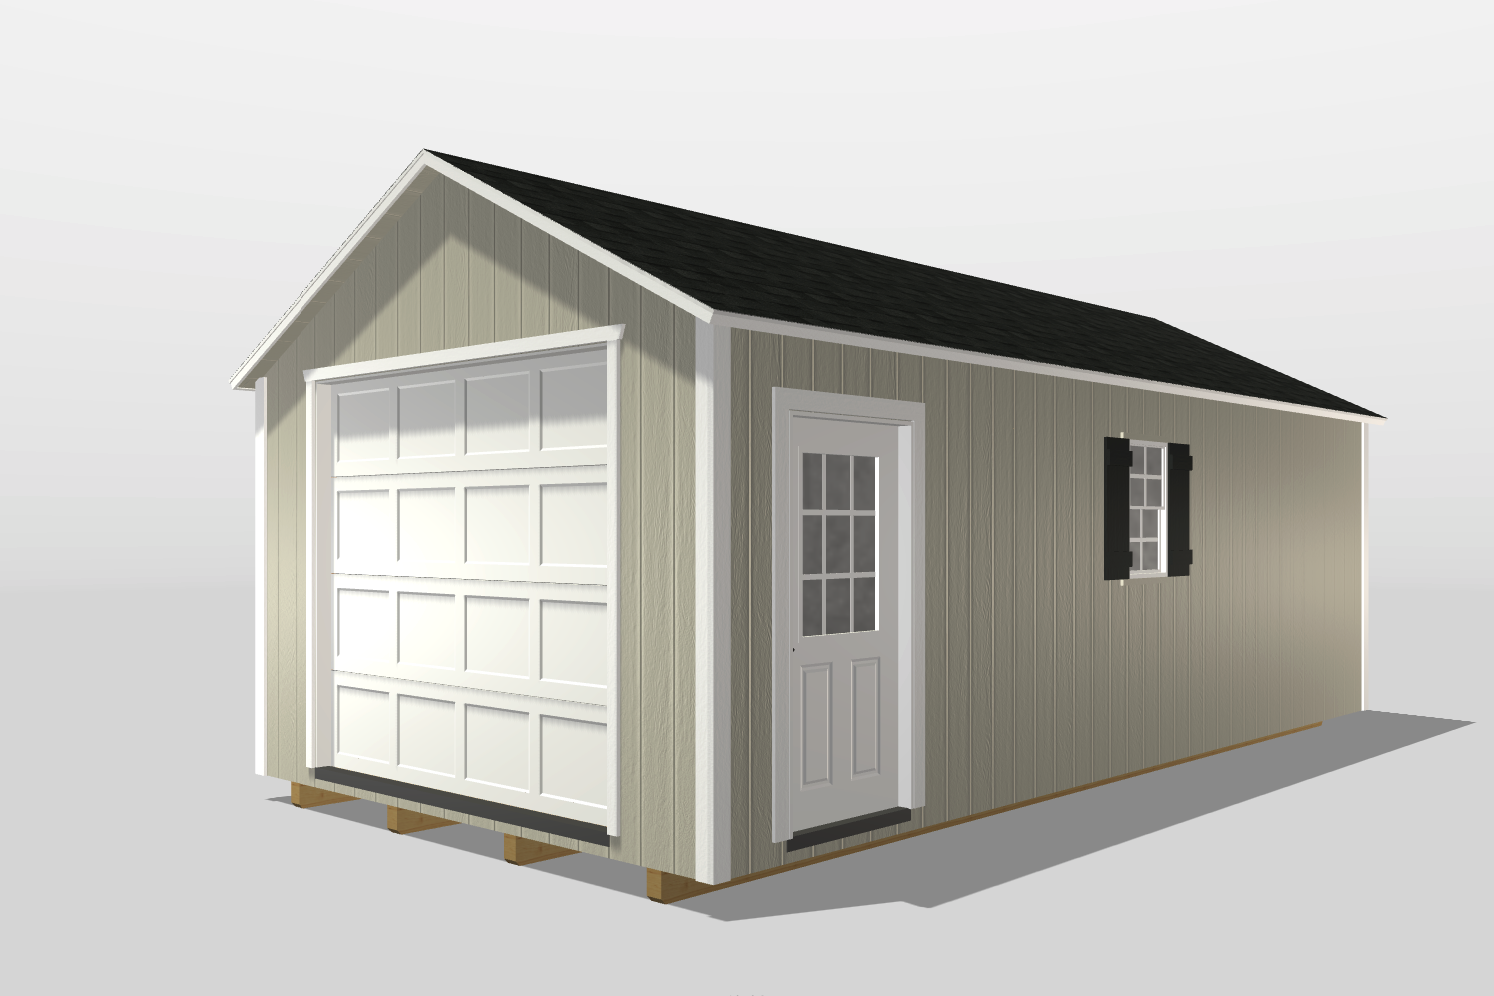 prefab single car garage statesboro georgia